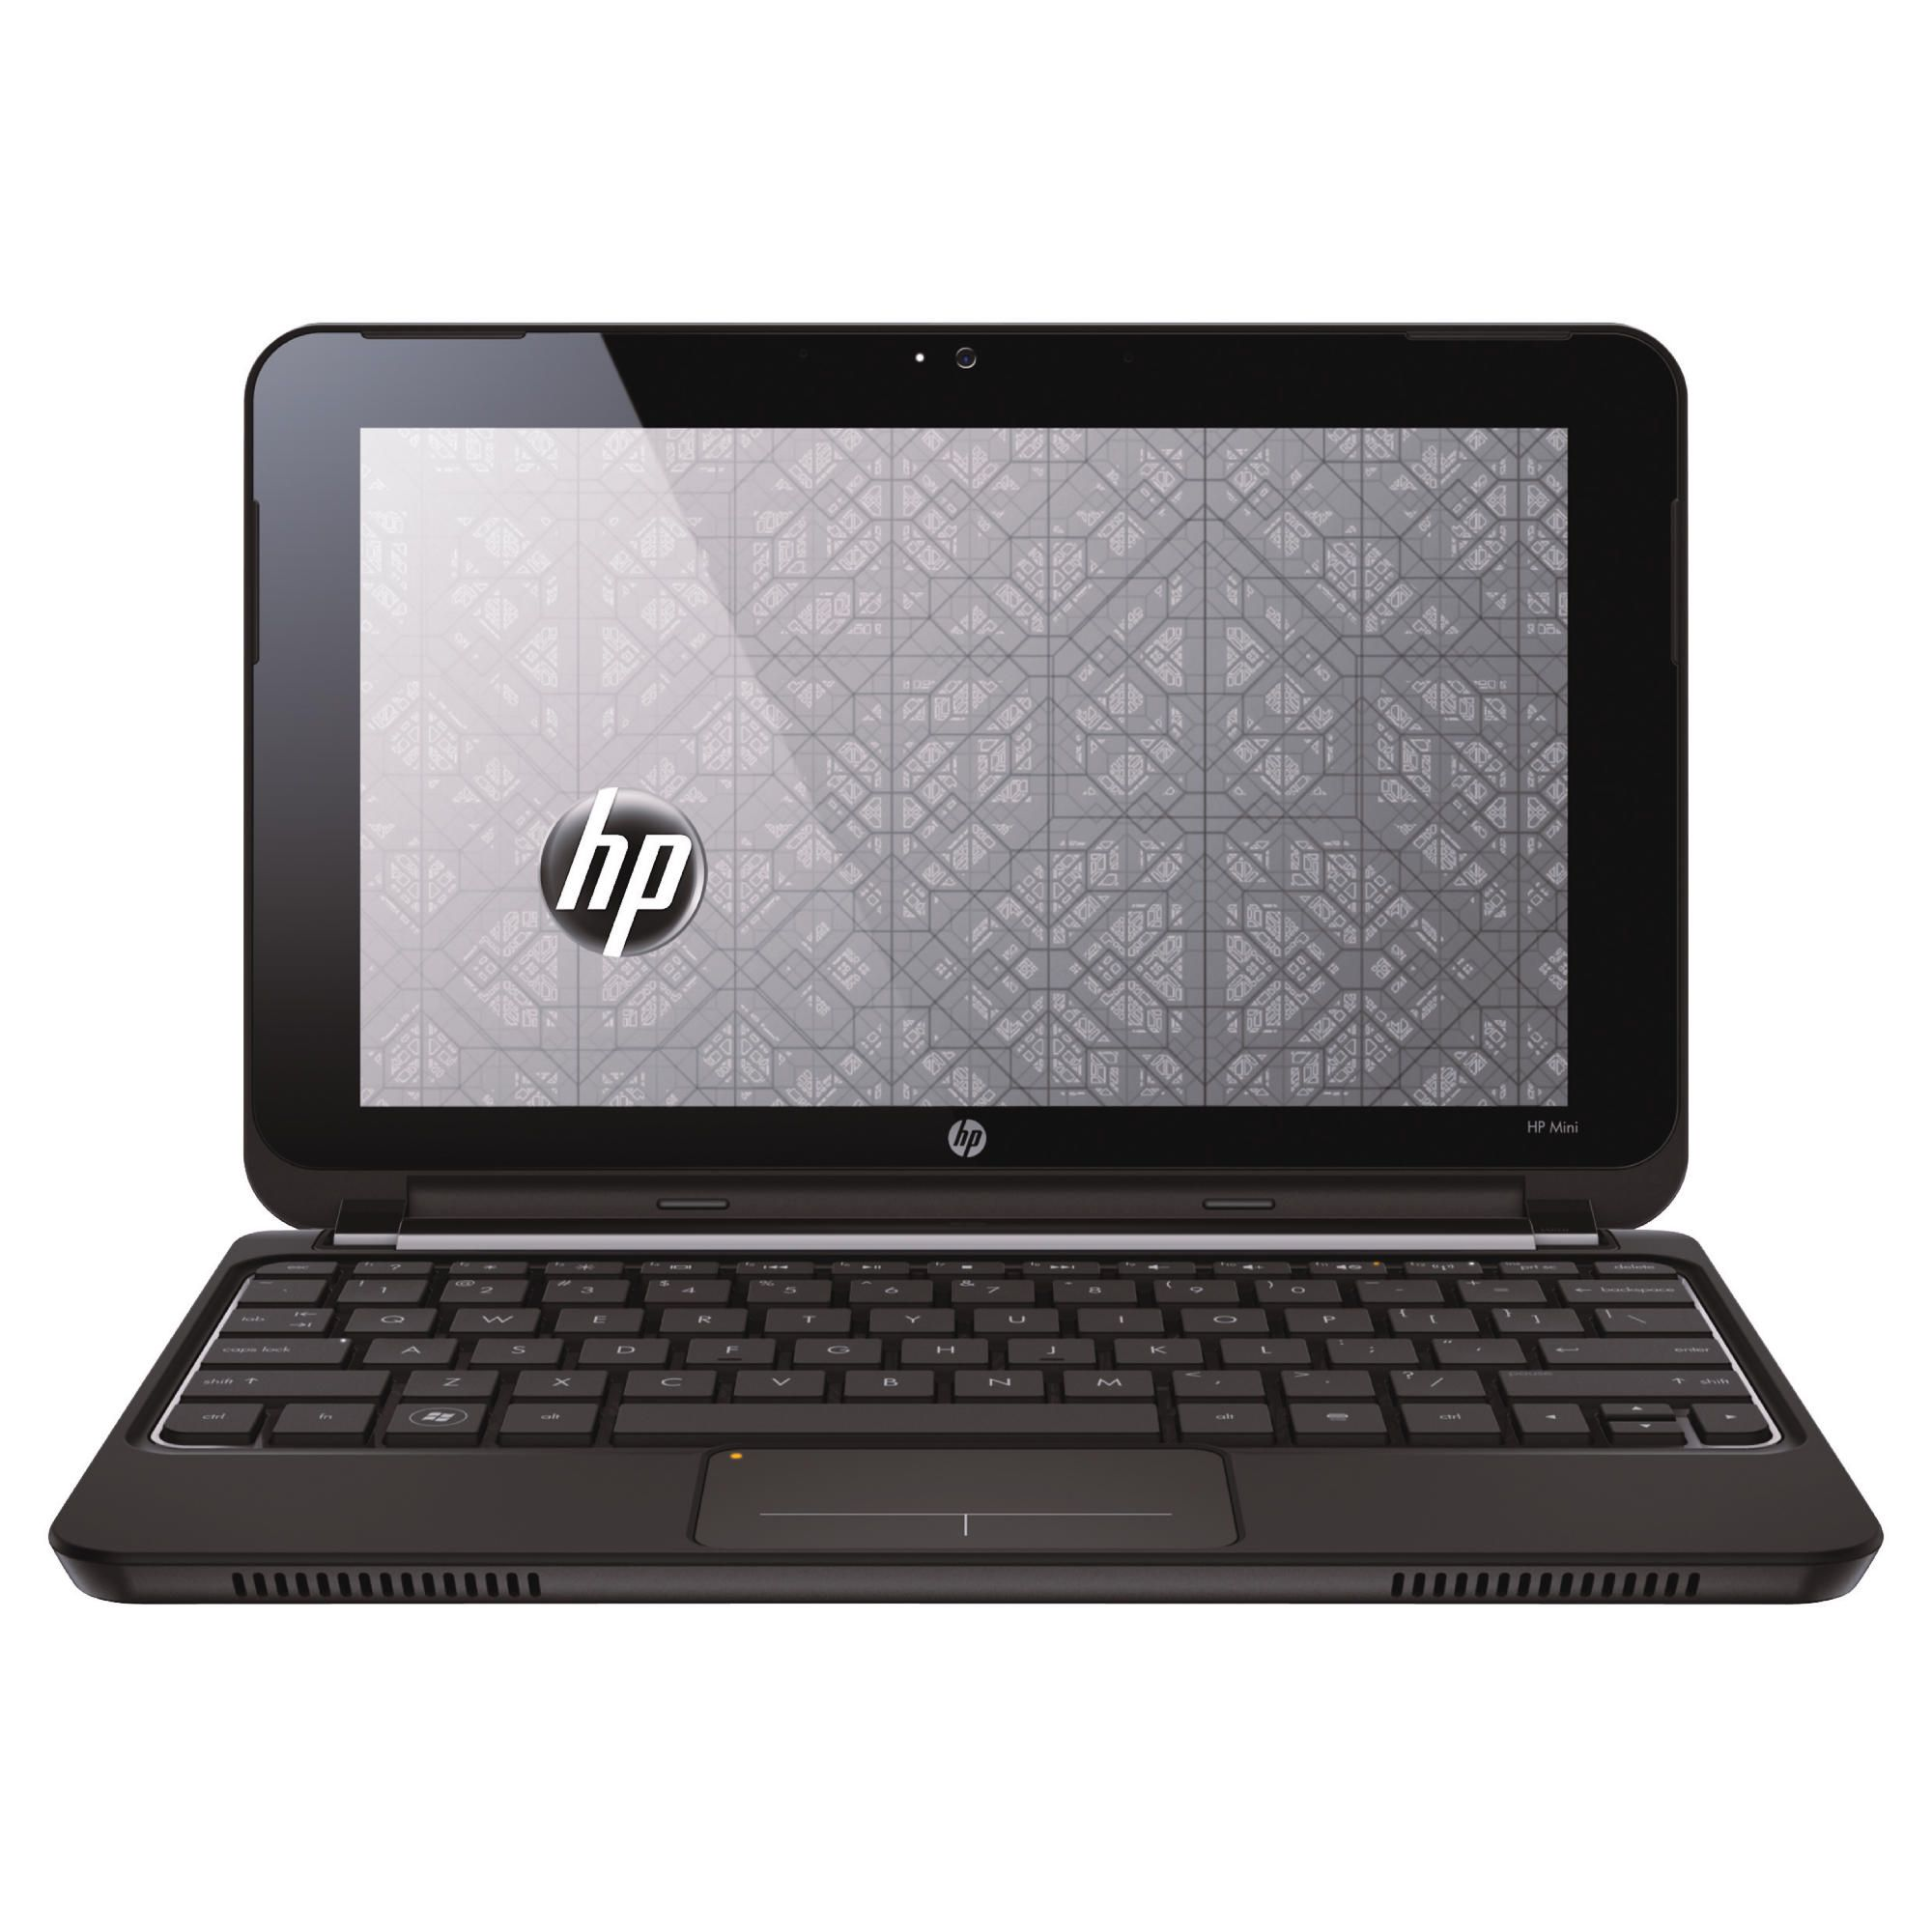 HP Mini 210-1020 Black Netbook - (Intel Atom N450, 1GB, 160GB, 10.1'' Screen, Windows 7 Starter) at Tesco Direct